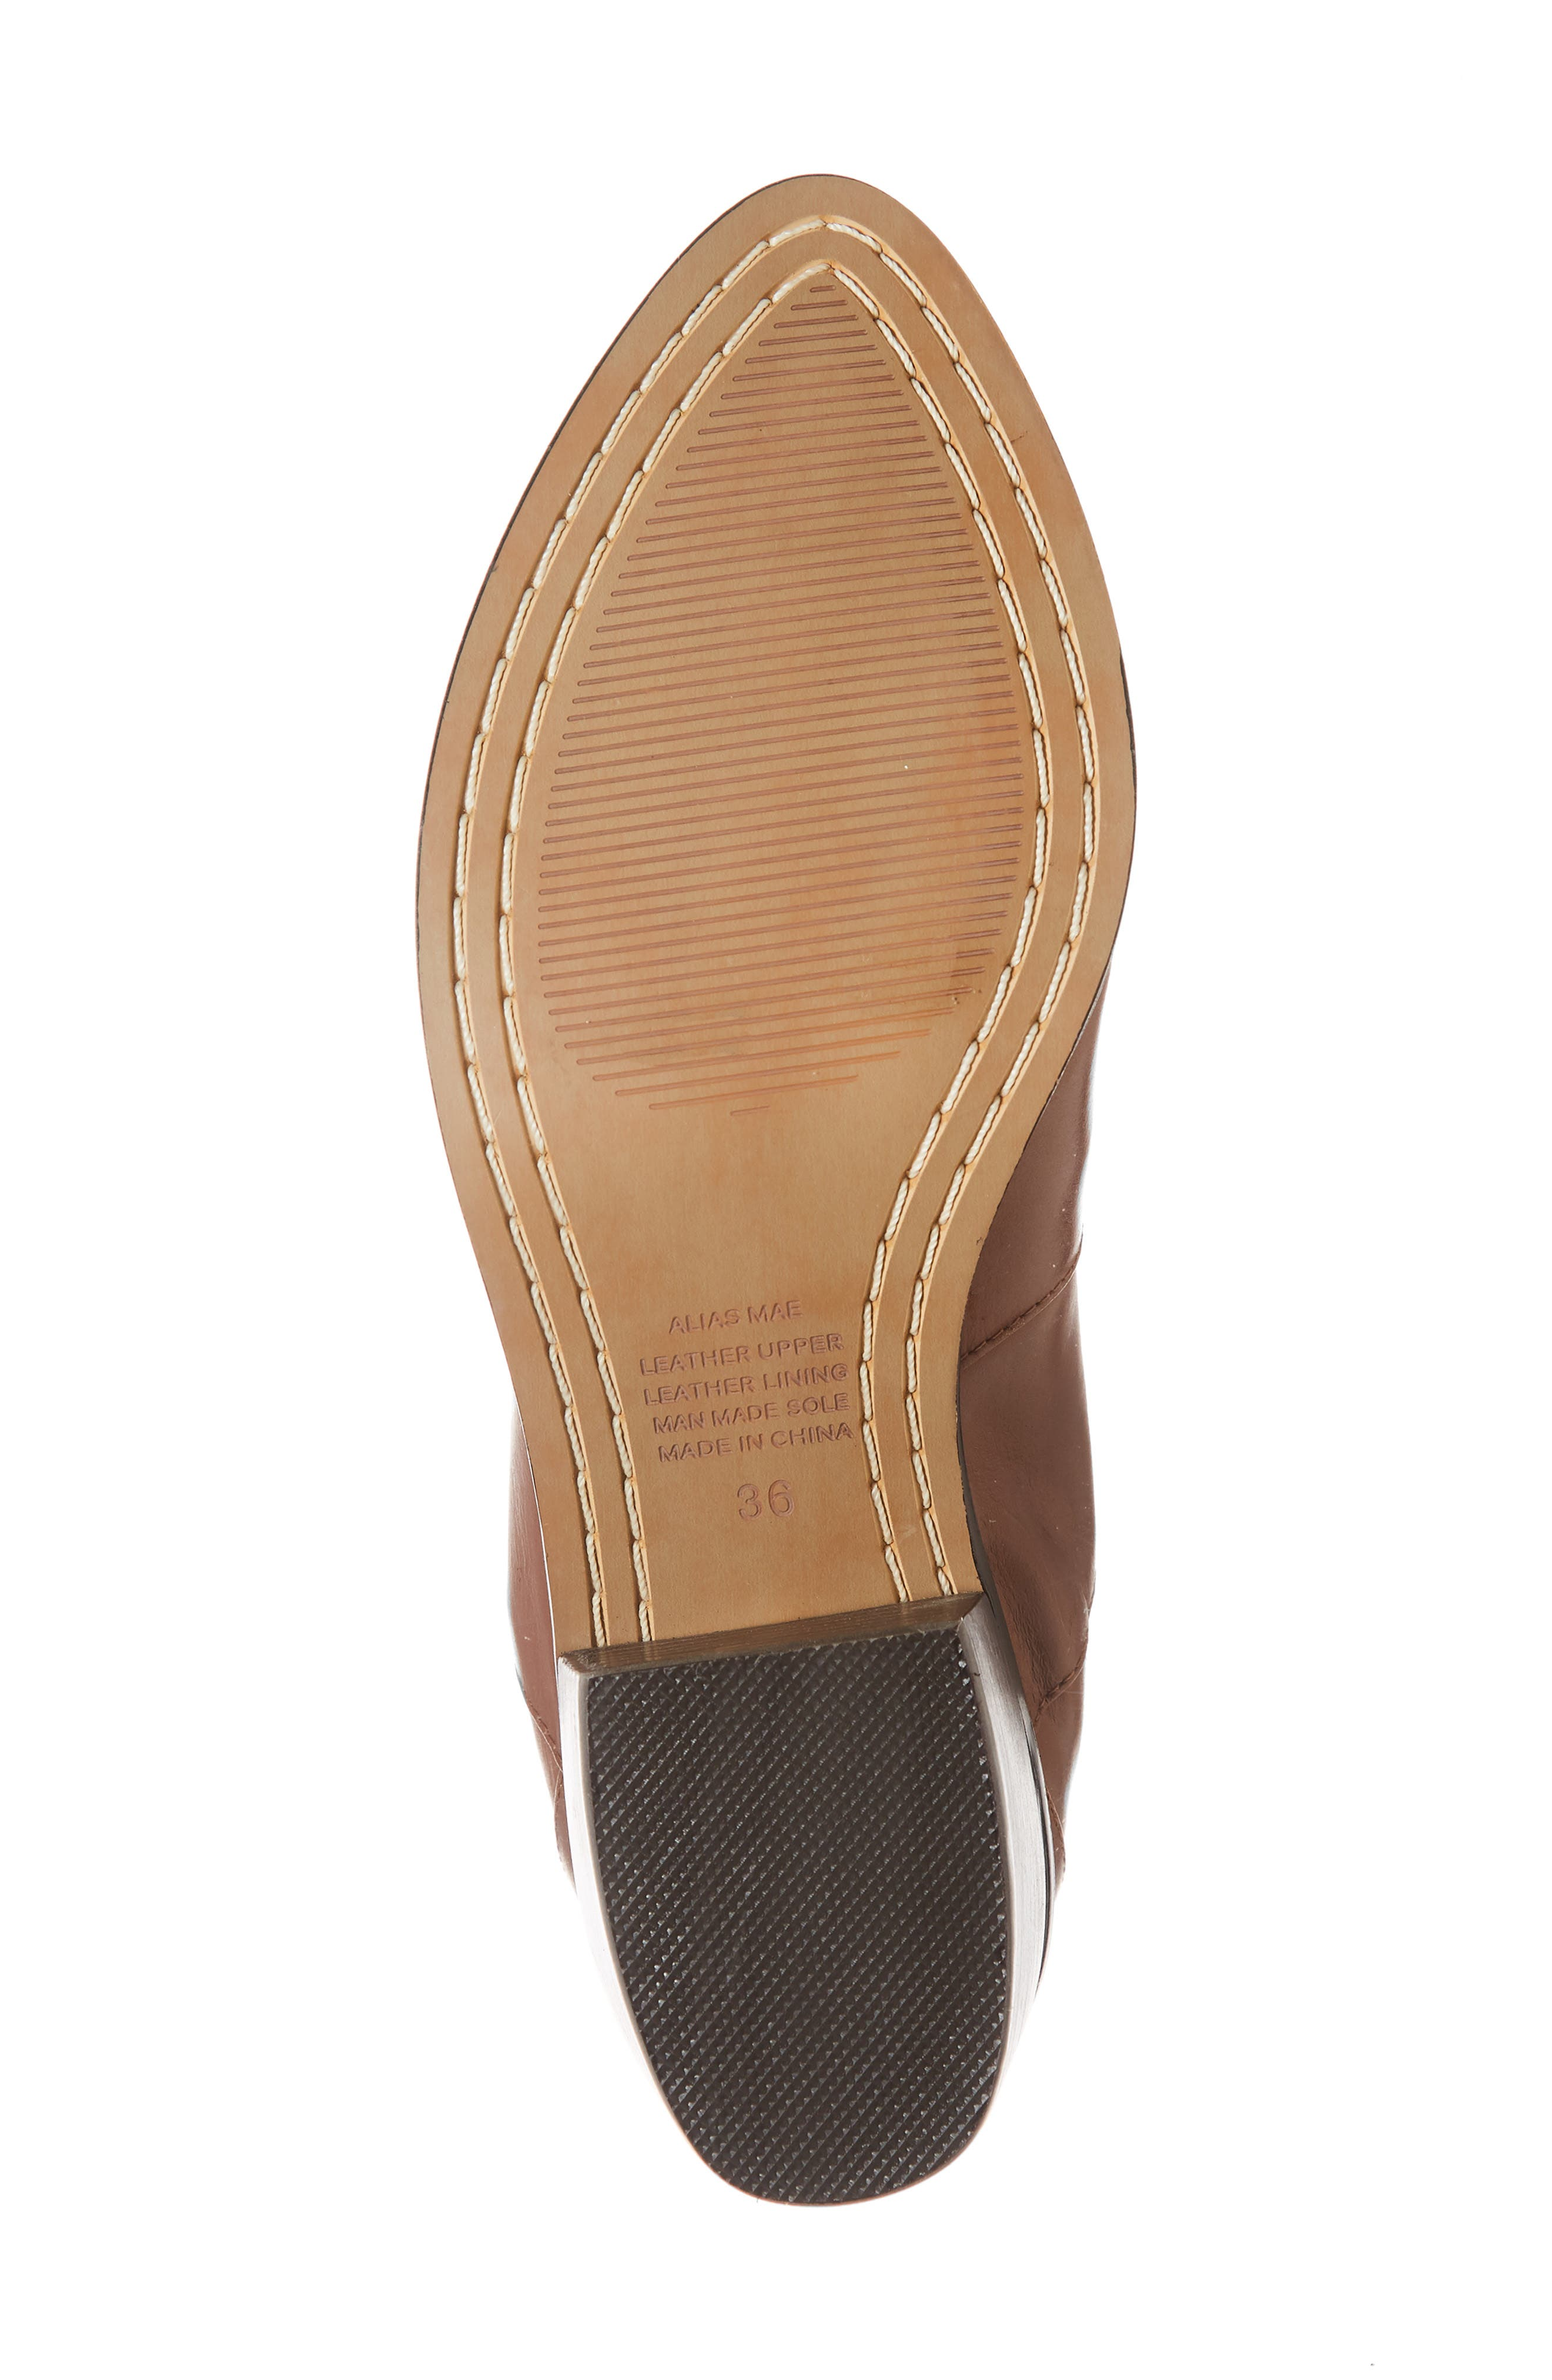 Genesis Bootie,                             Alternate thumbnail 6, color,                             TAN LEATHER